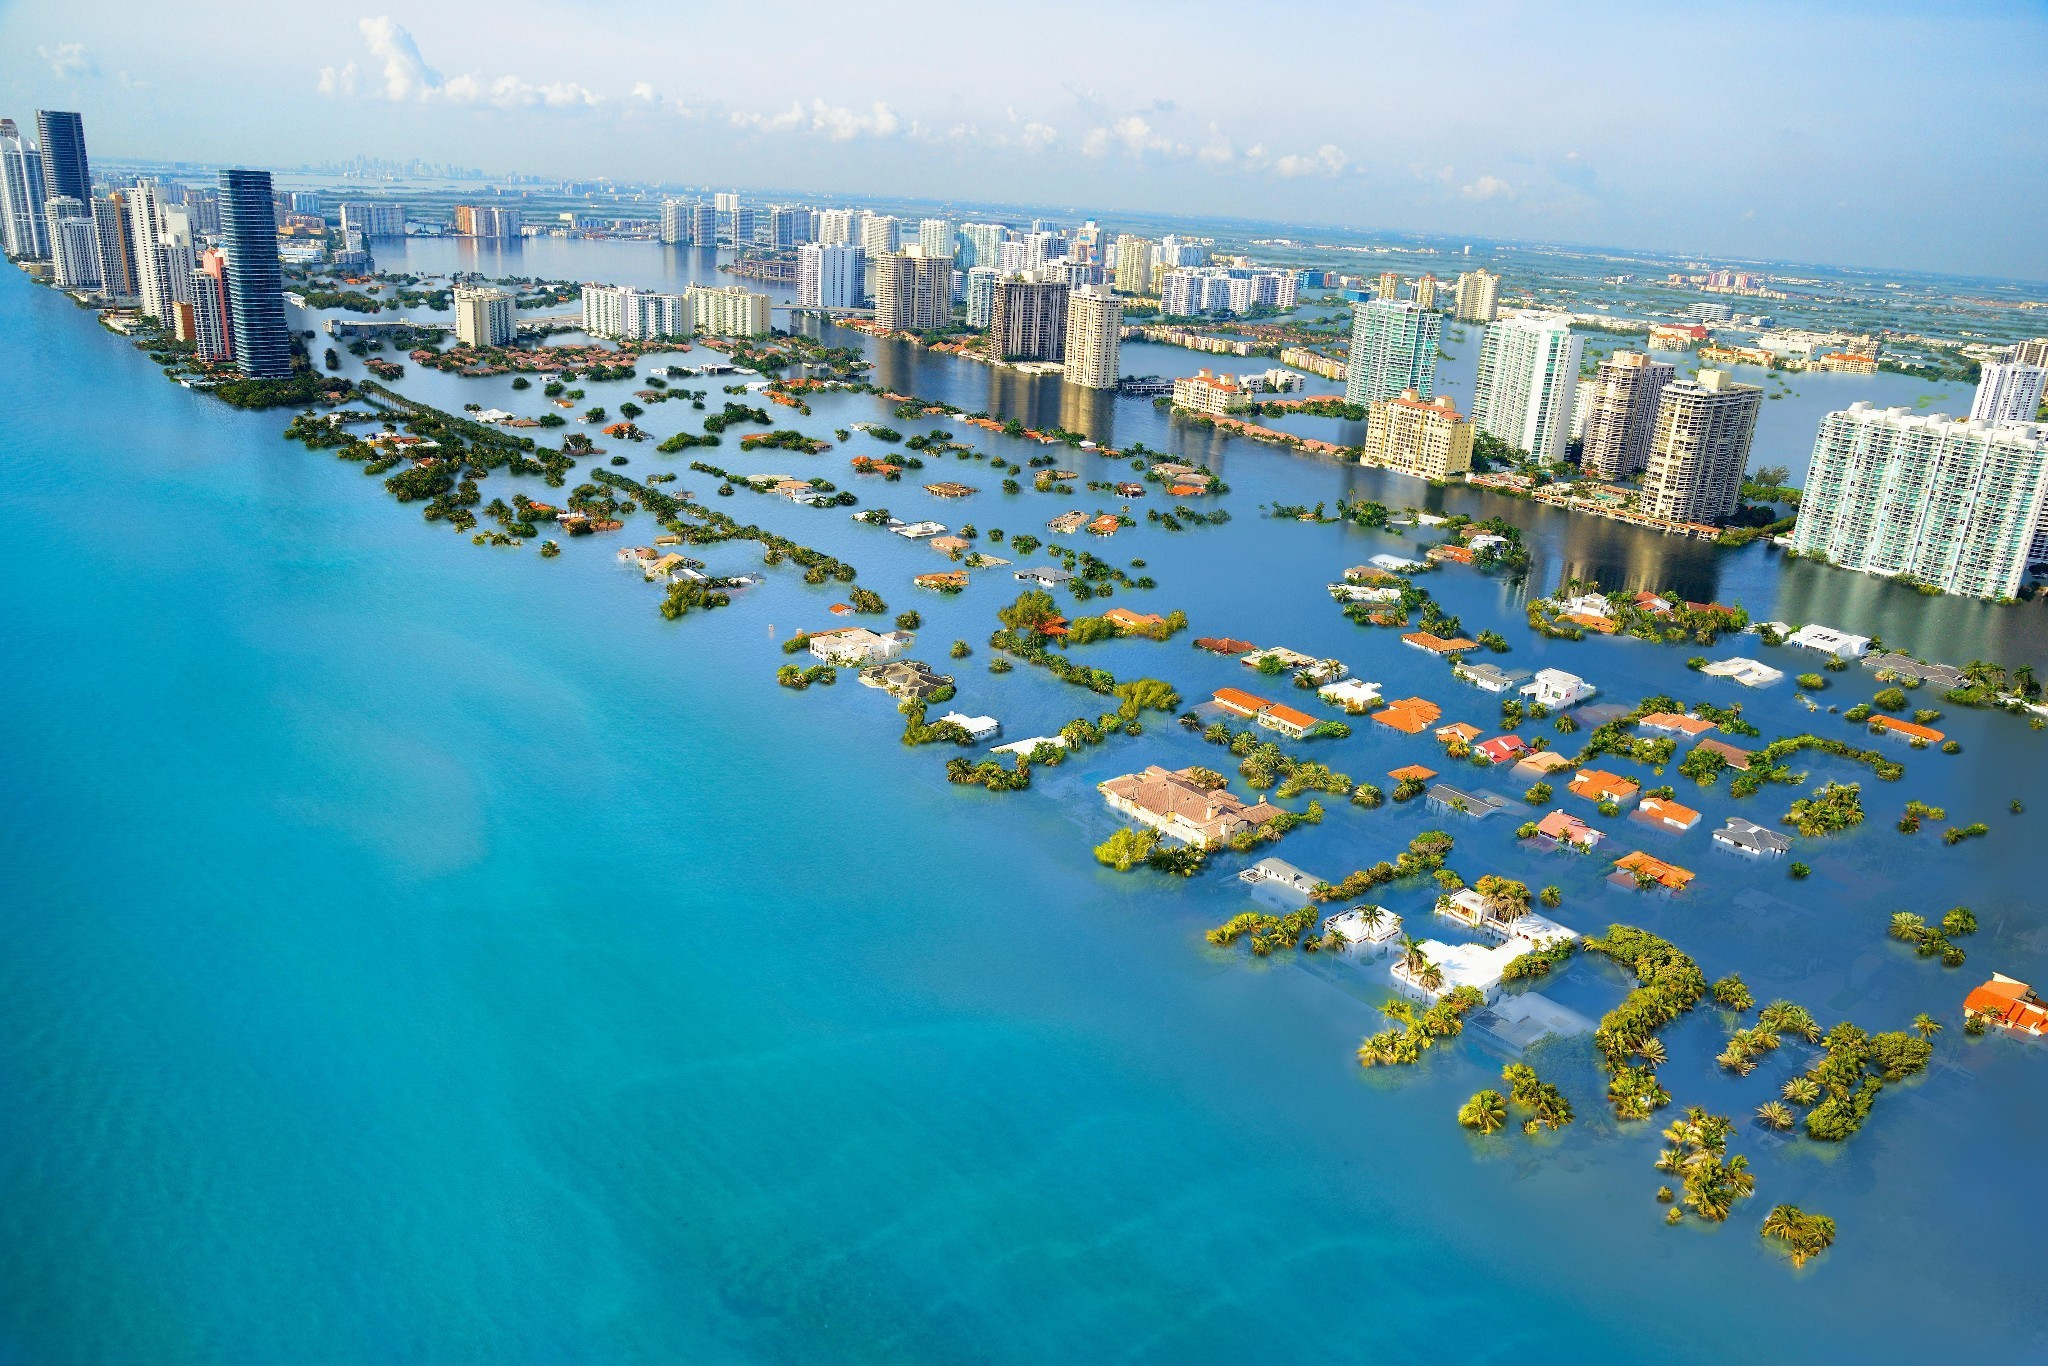 From Miami to Shanghai: 3C of warming will leave world cities below sea level